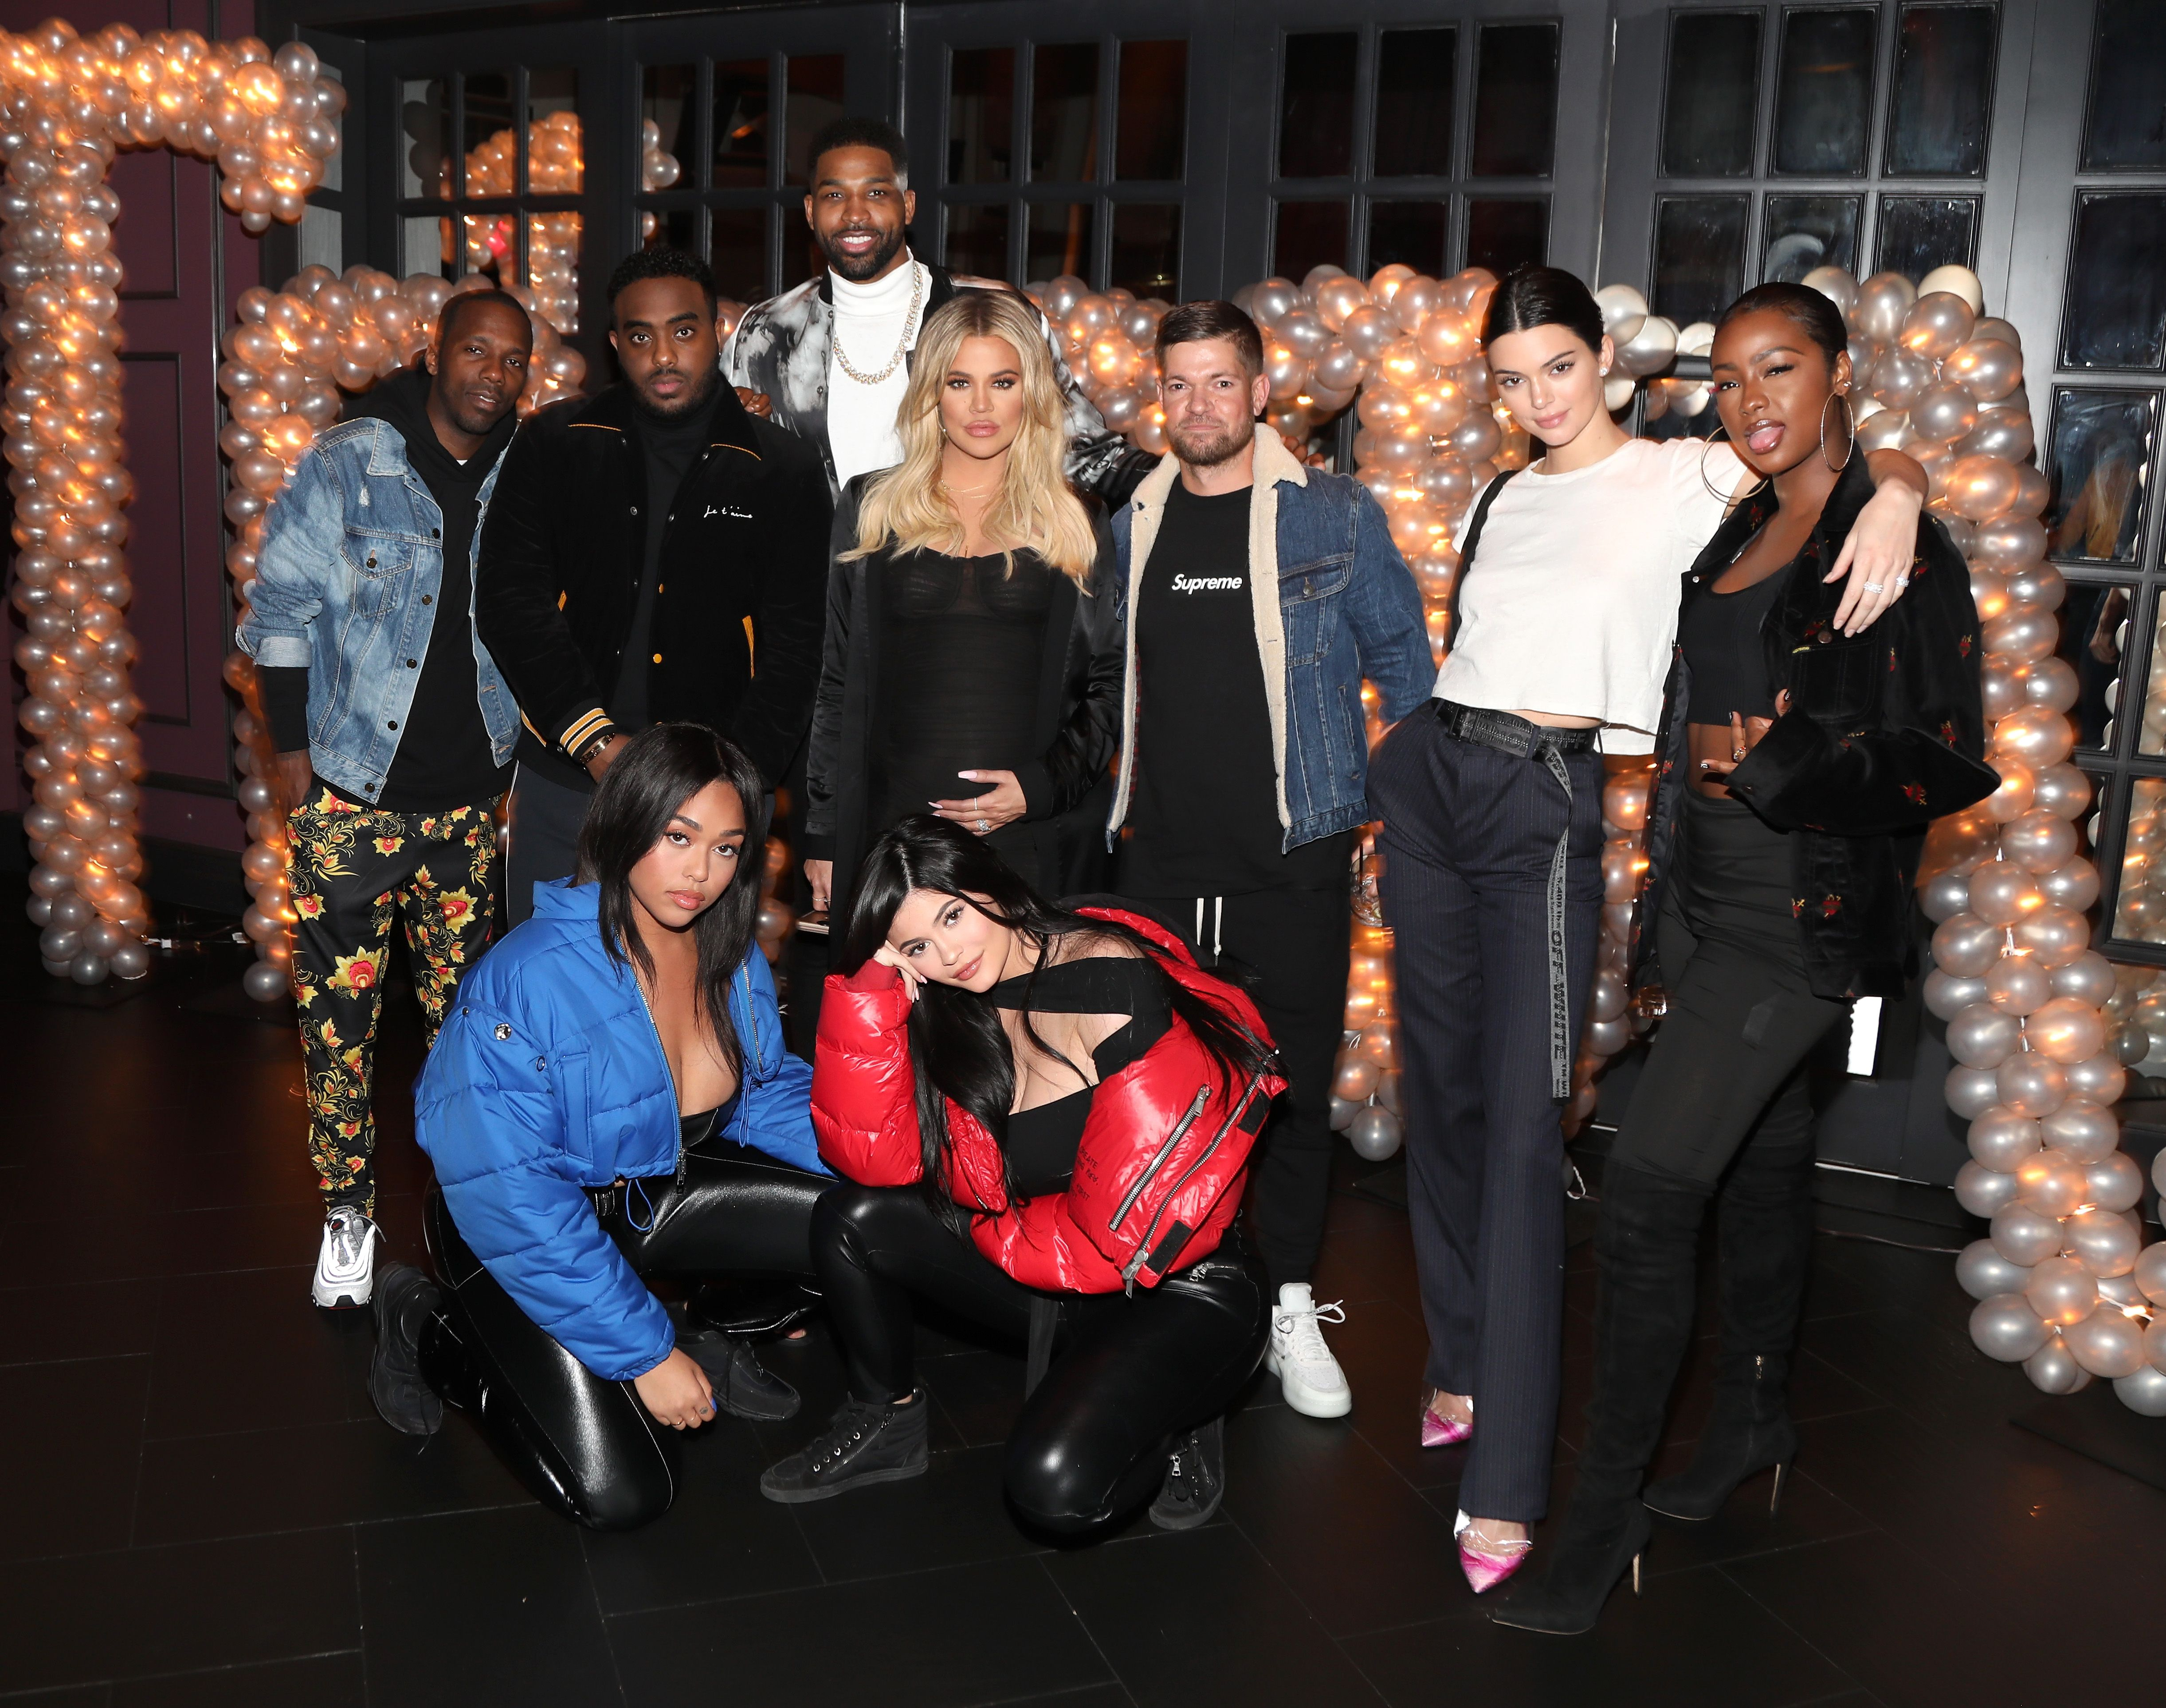 The Tristan Thompson and Jordyn Woods Cheating Drama Continues, and So Do the Memes